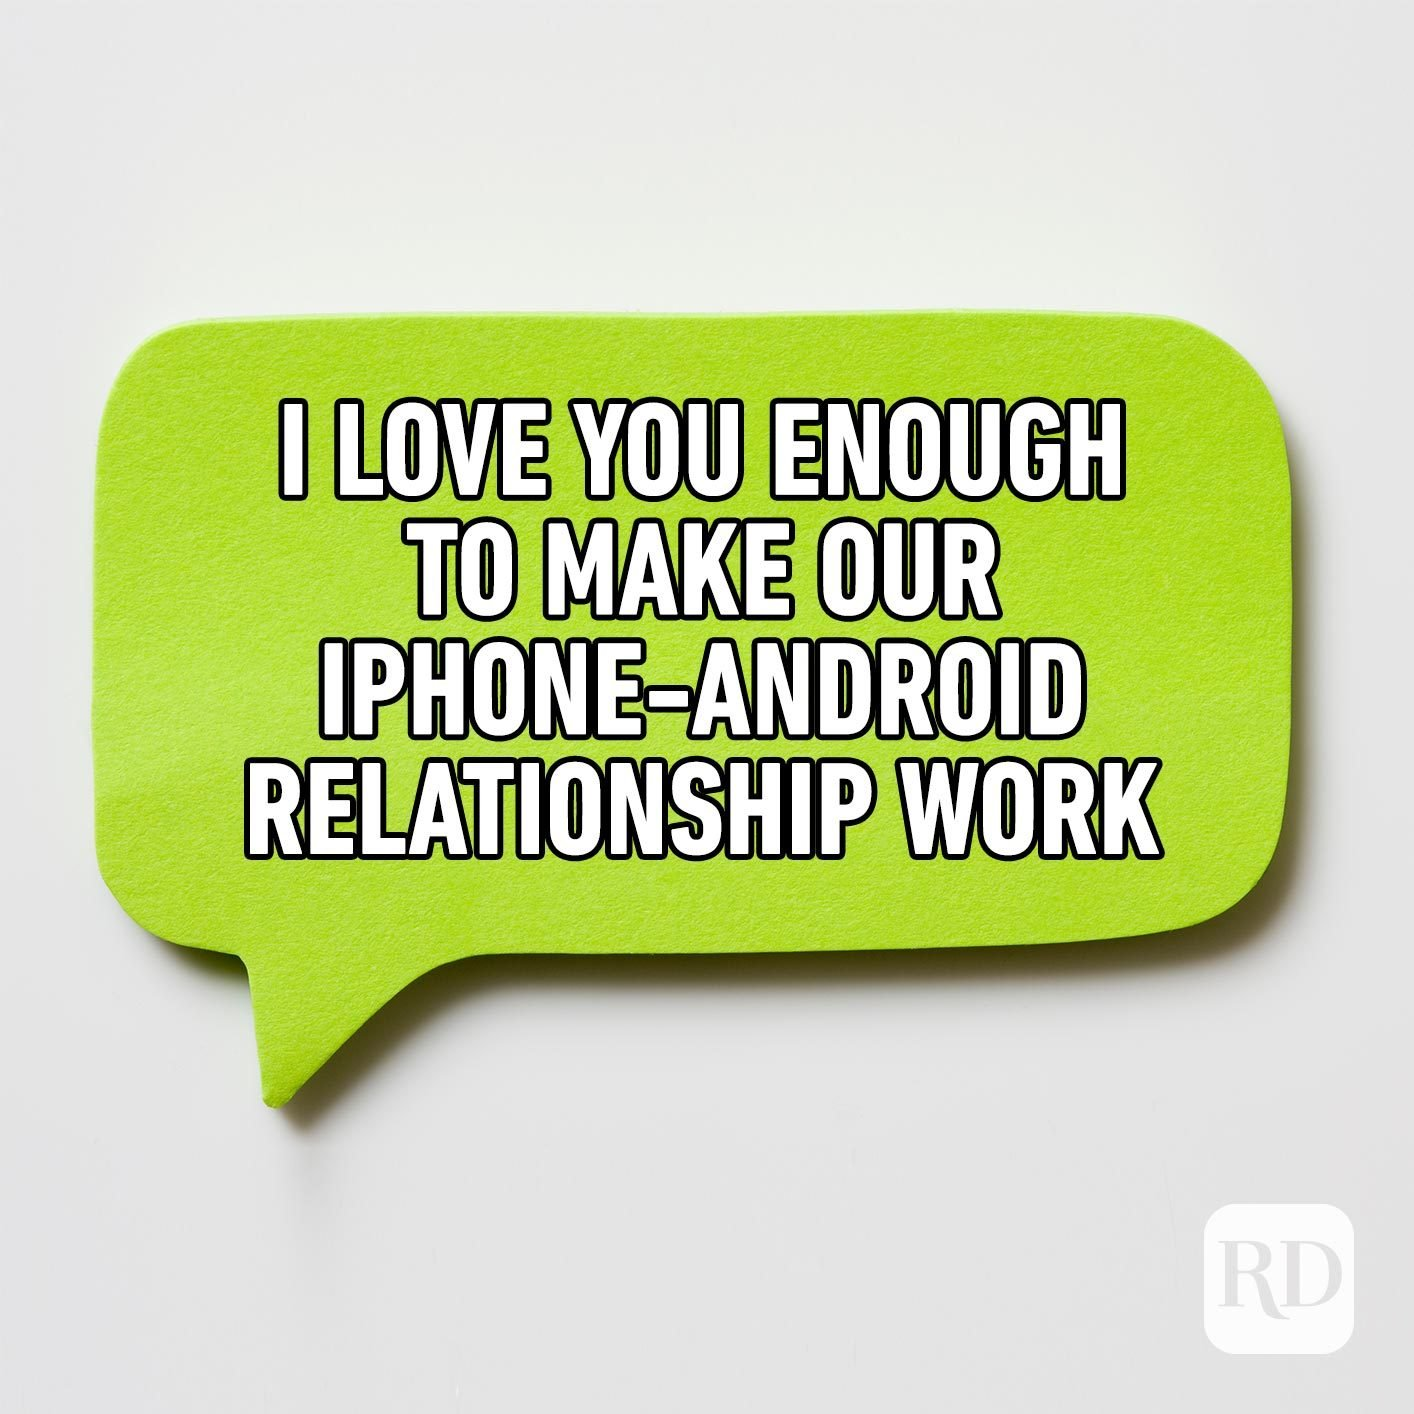 Green text bubble. Meme text: I love you enough to make our iphone-android relationship work.